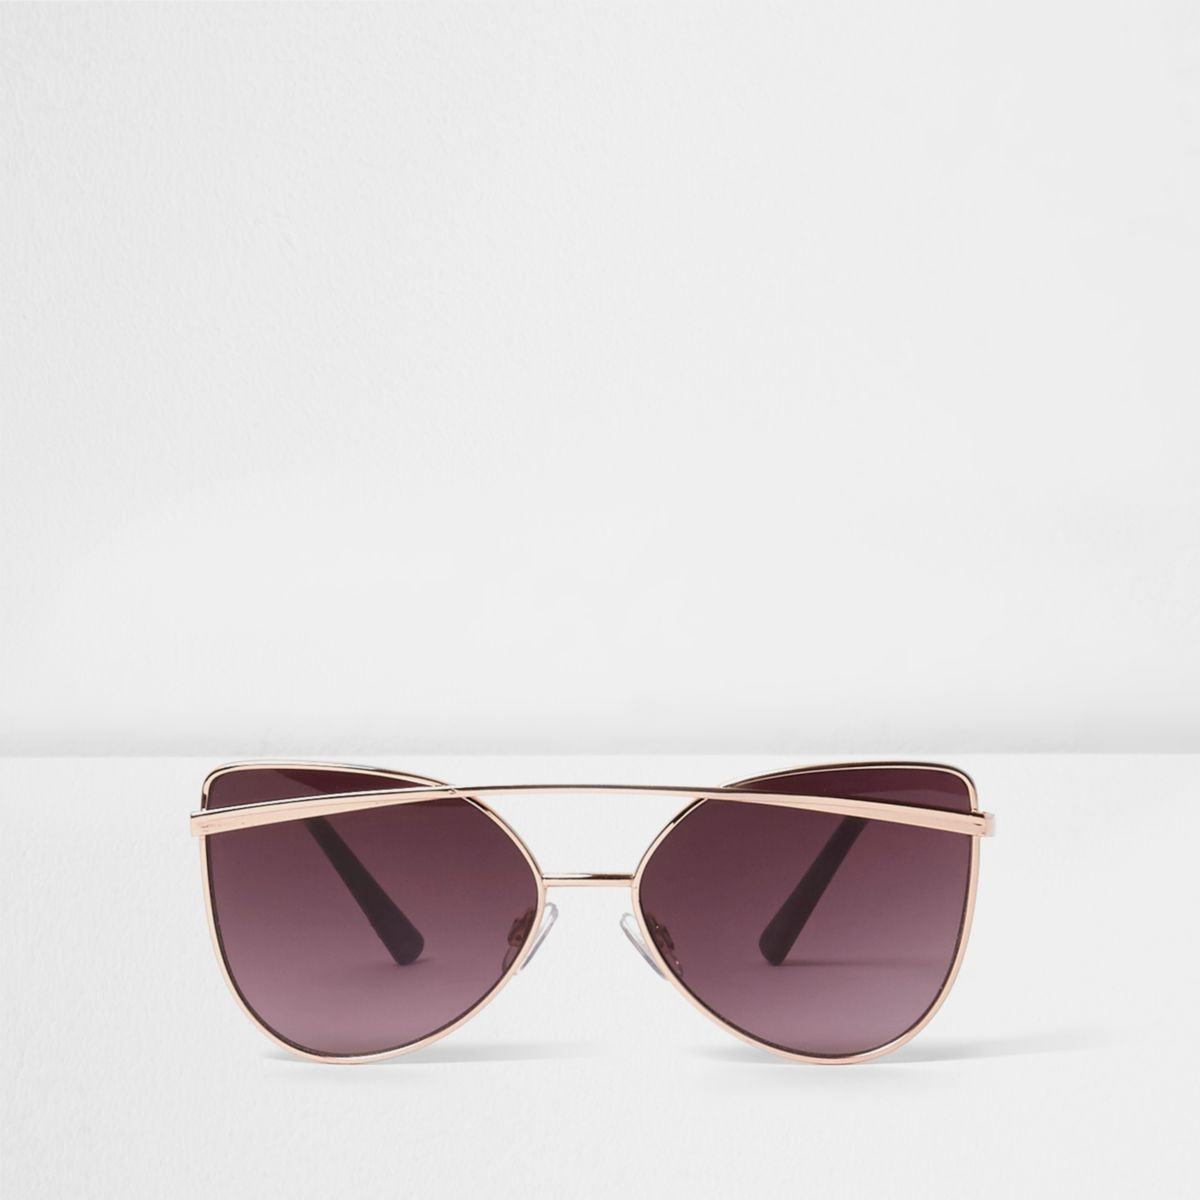 Girls Rose Gold Tone Brow Bar Sunglasses by River Island